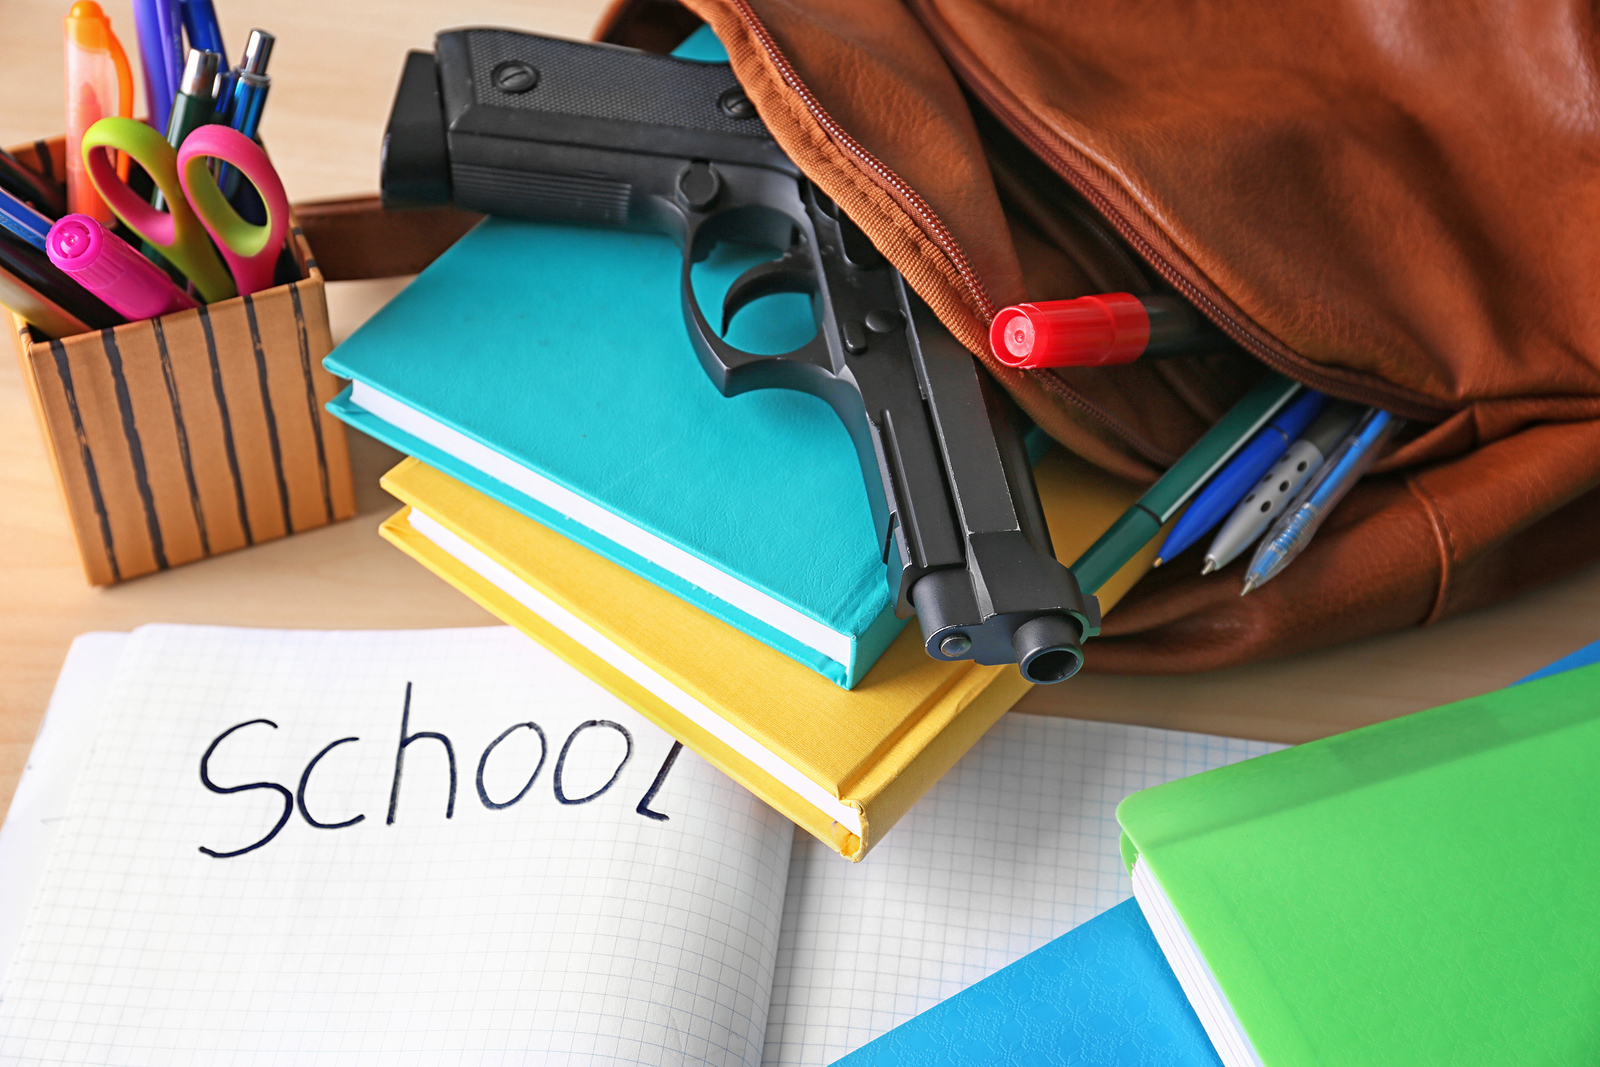 Student arrested in San Marcos after gun found in backpack